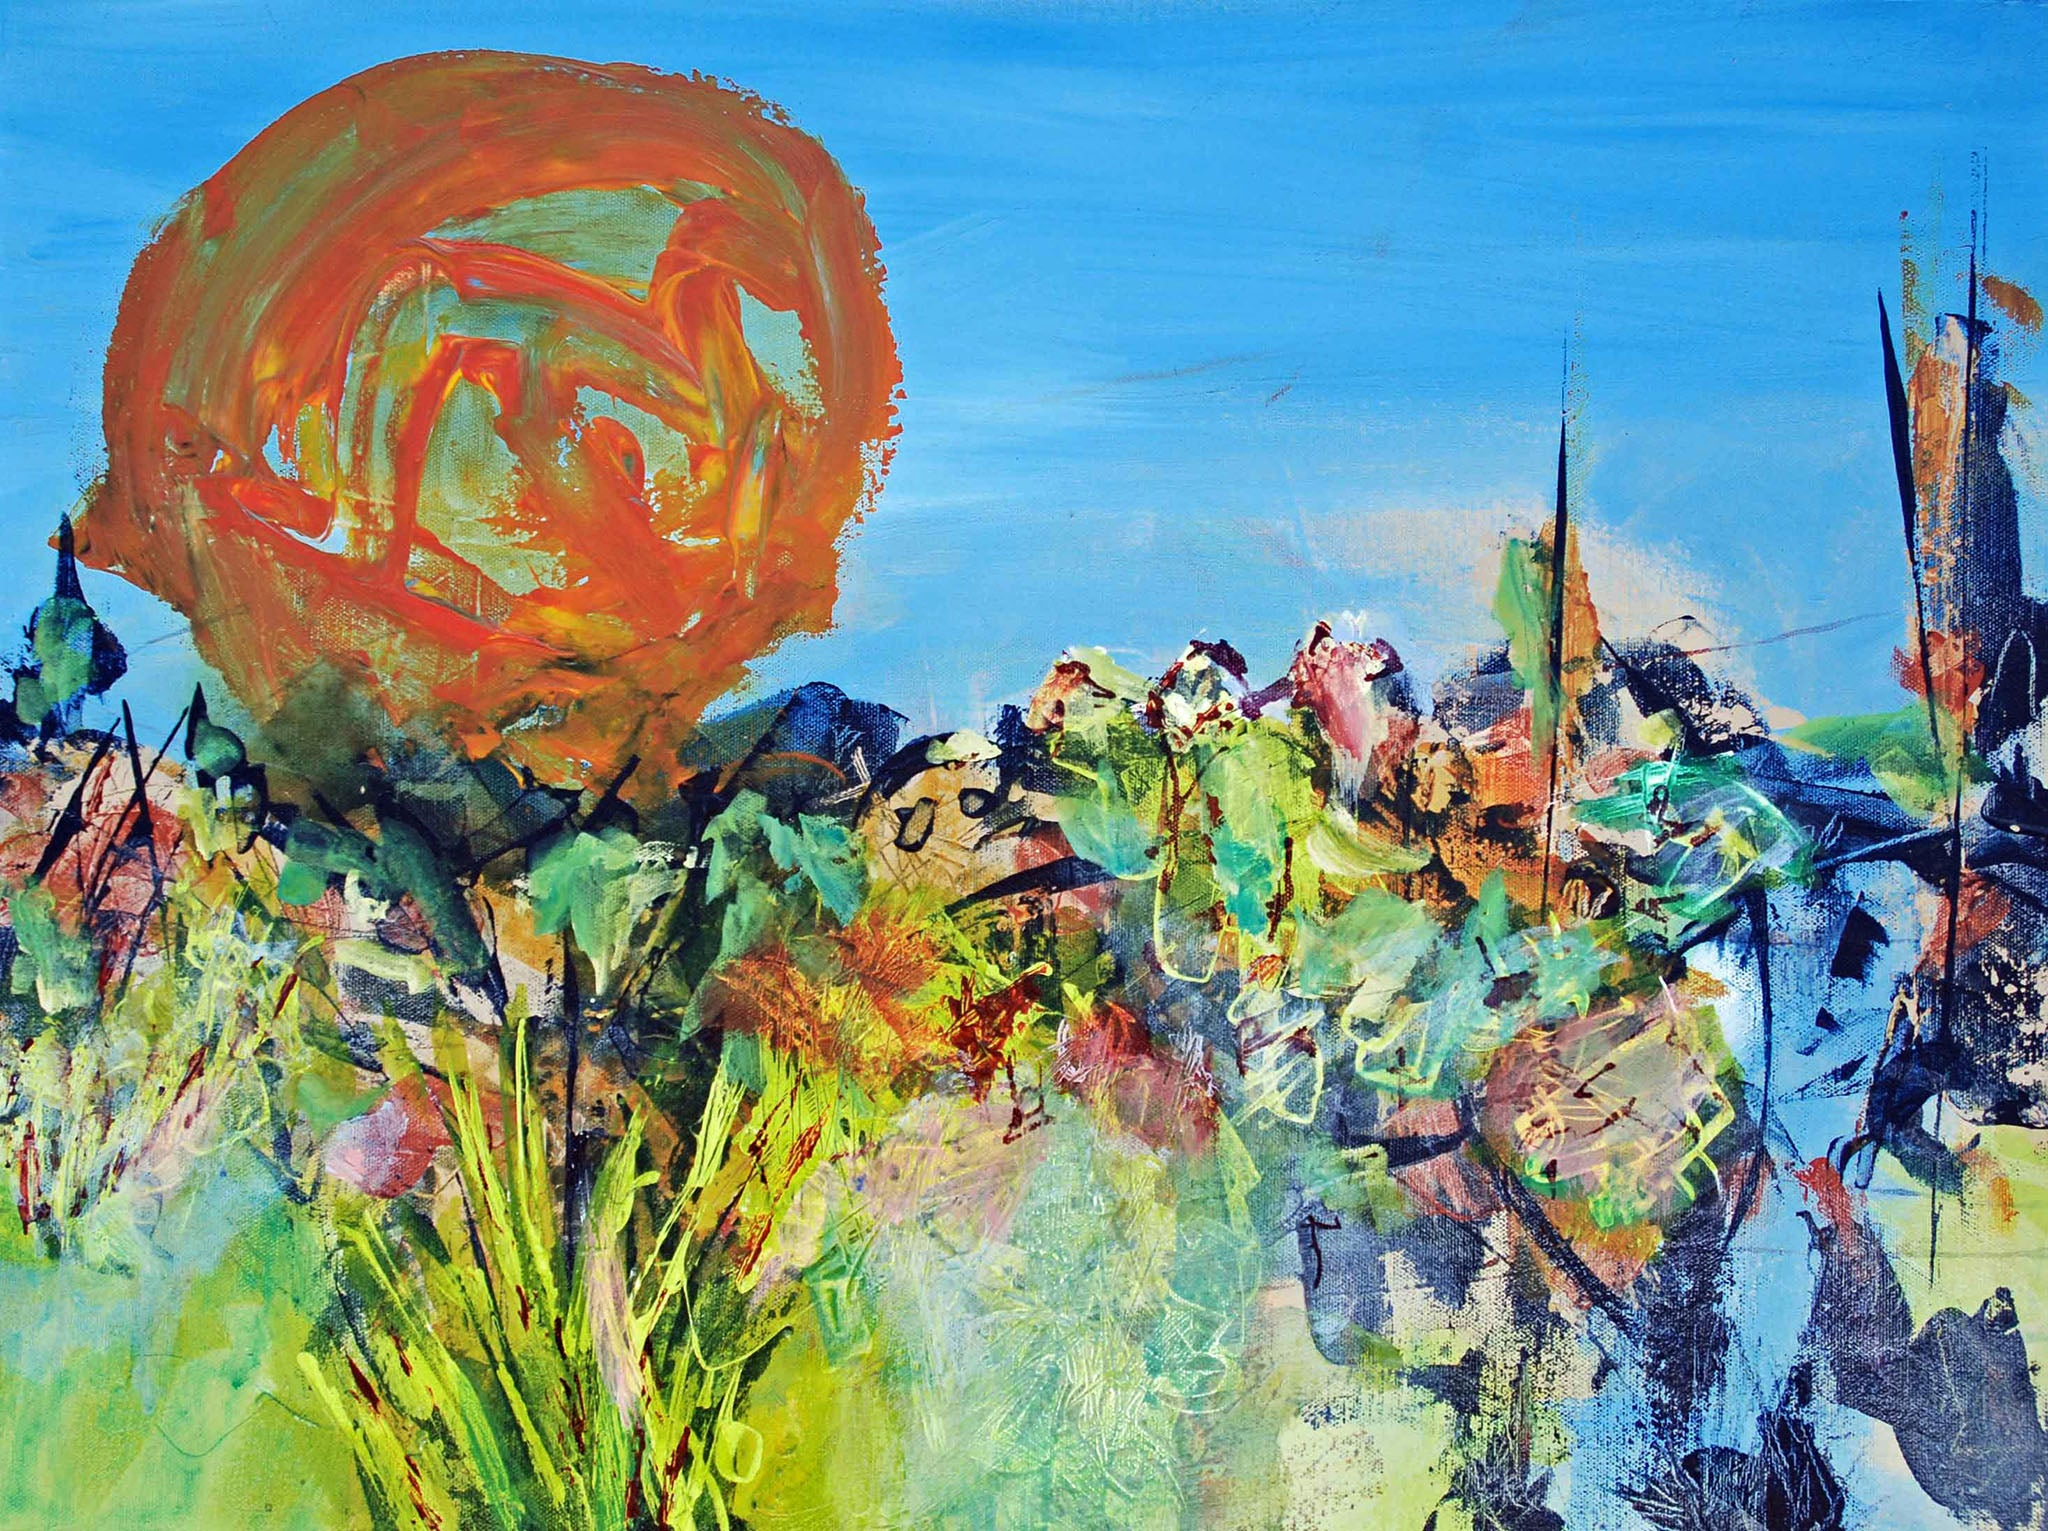 South -- Acrylic painting by Nard Claar